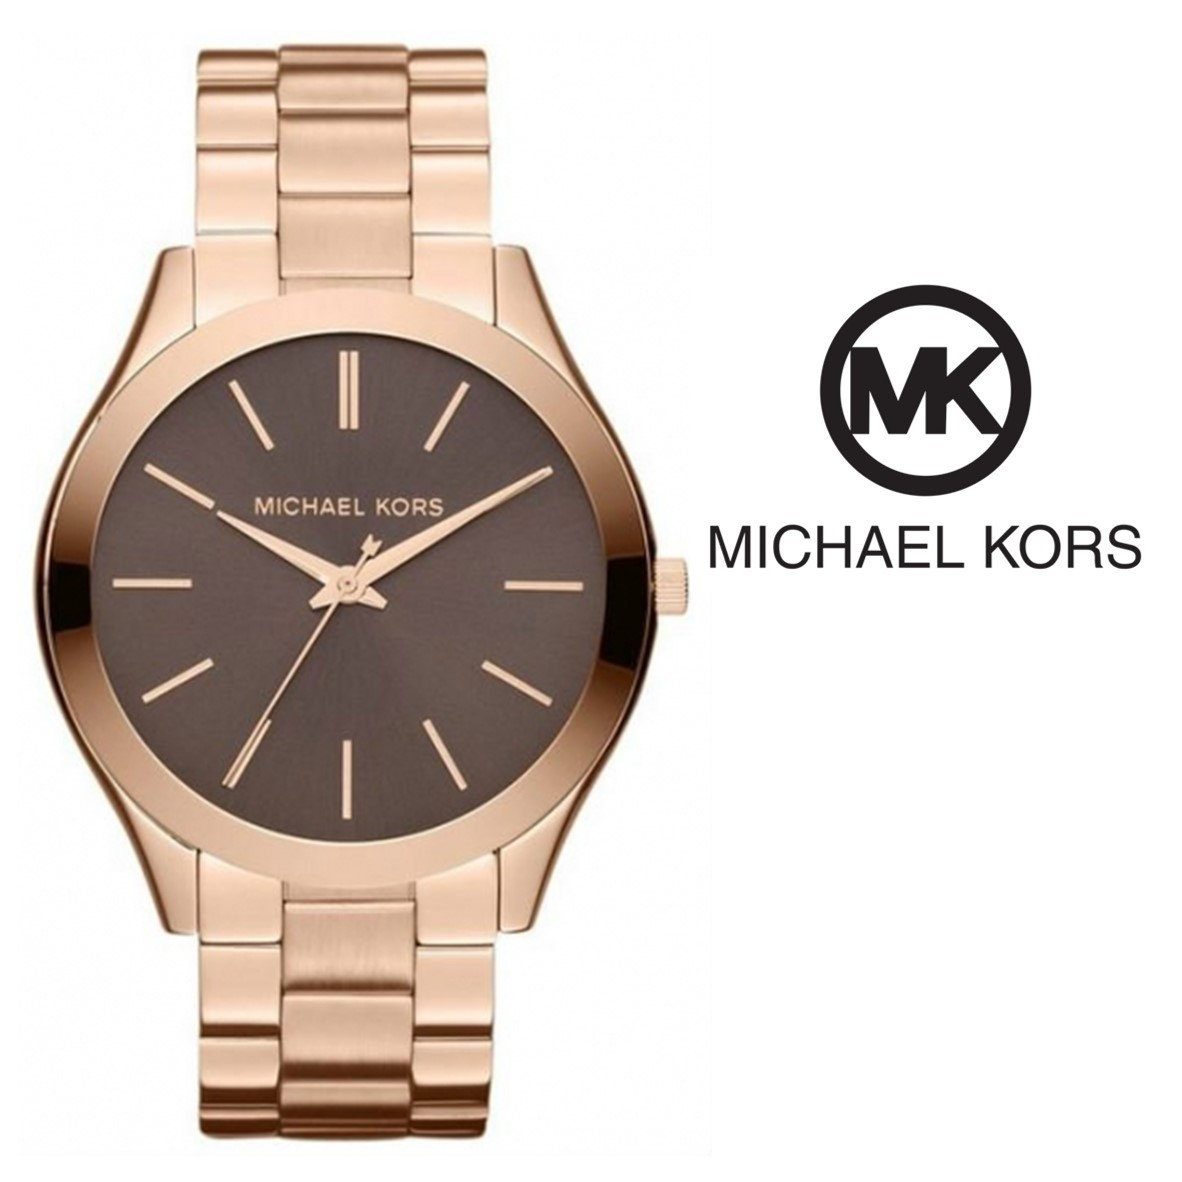 6ab366f70 Relógio Michael Kors® Runway Rose Gold | 5ATM - You Like It